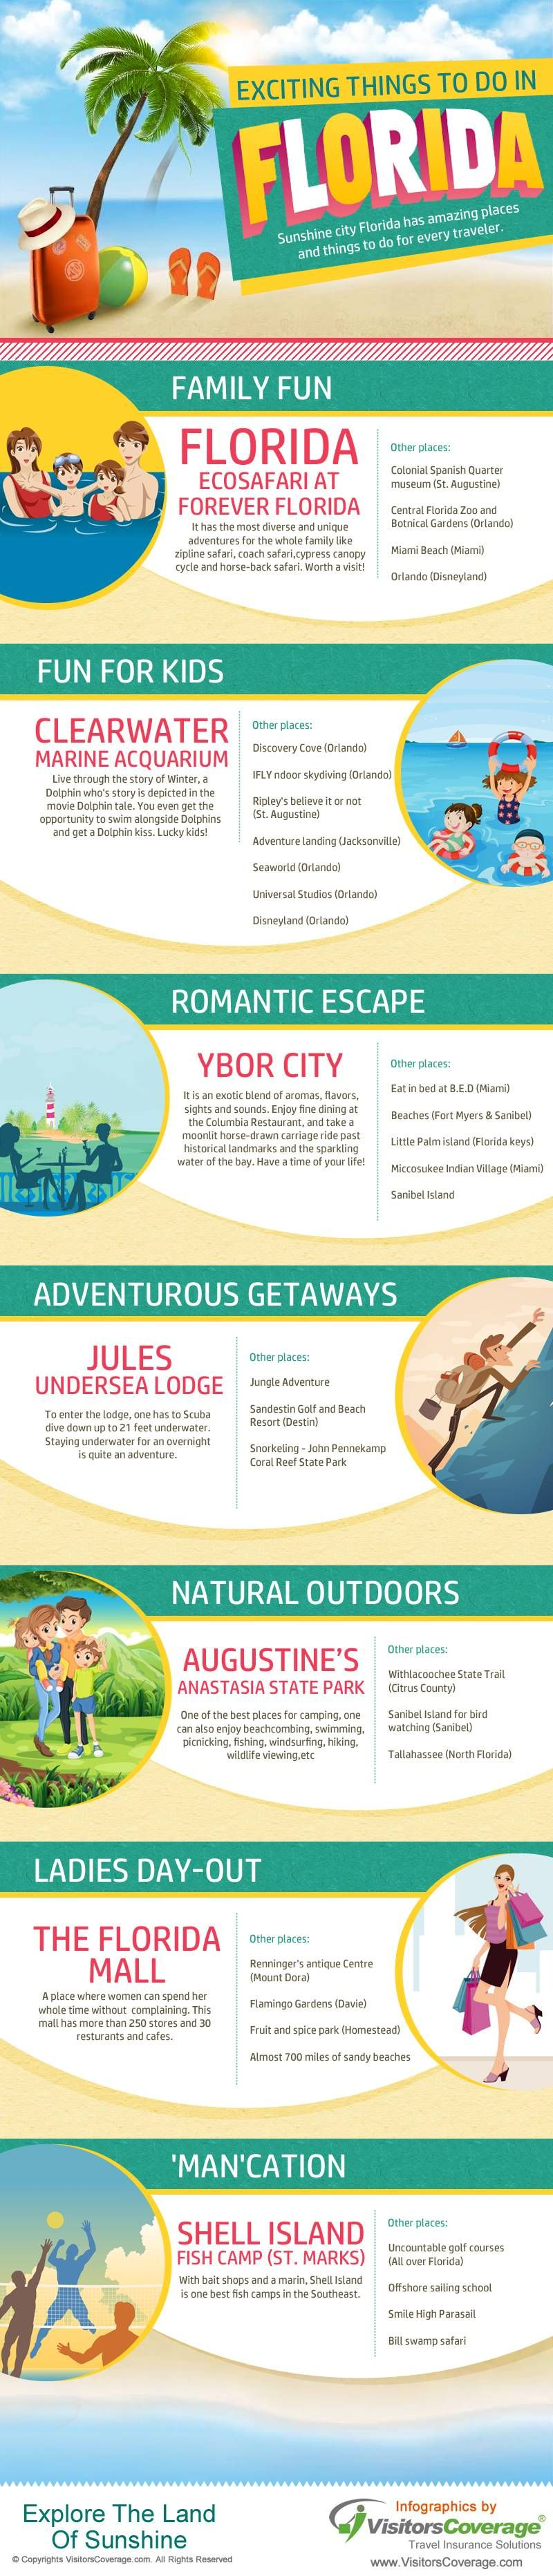 Exciting Things To Do In Florida Infographic Things To Do Florida Traveling By Yourself